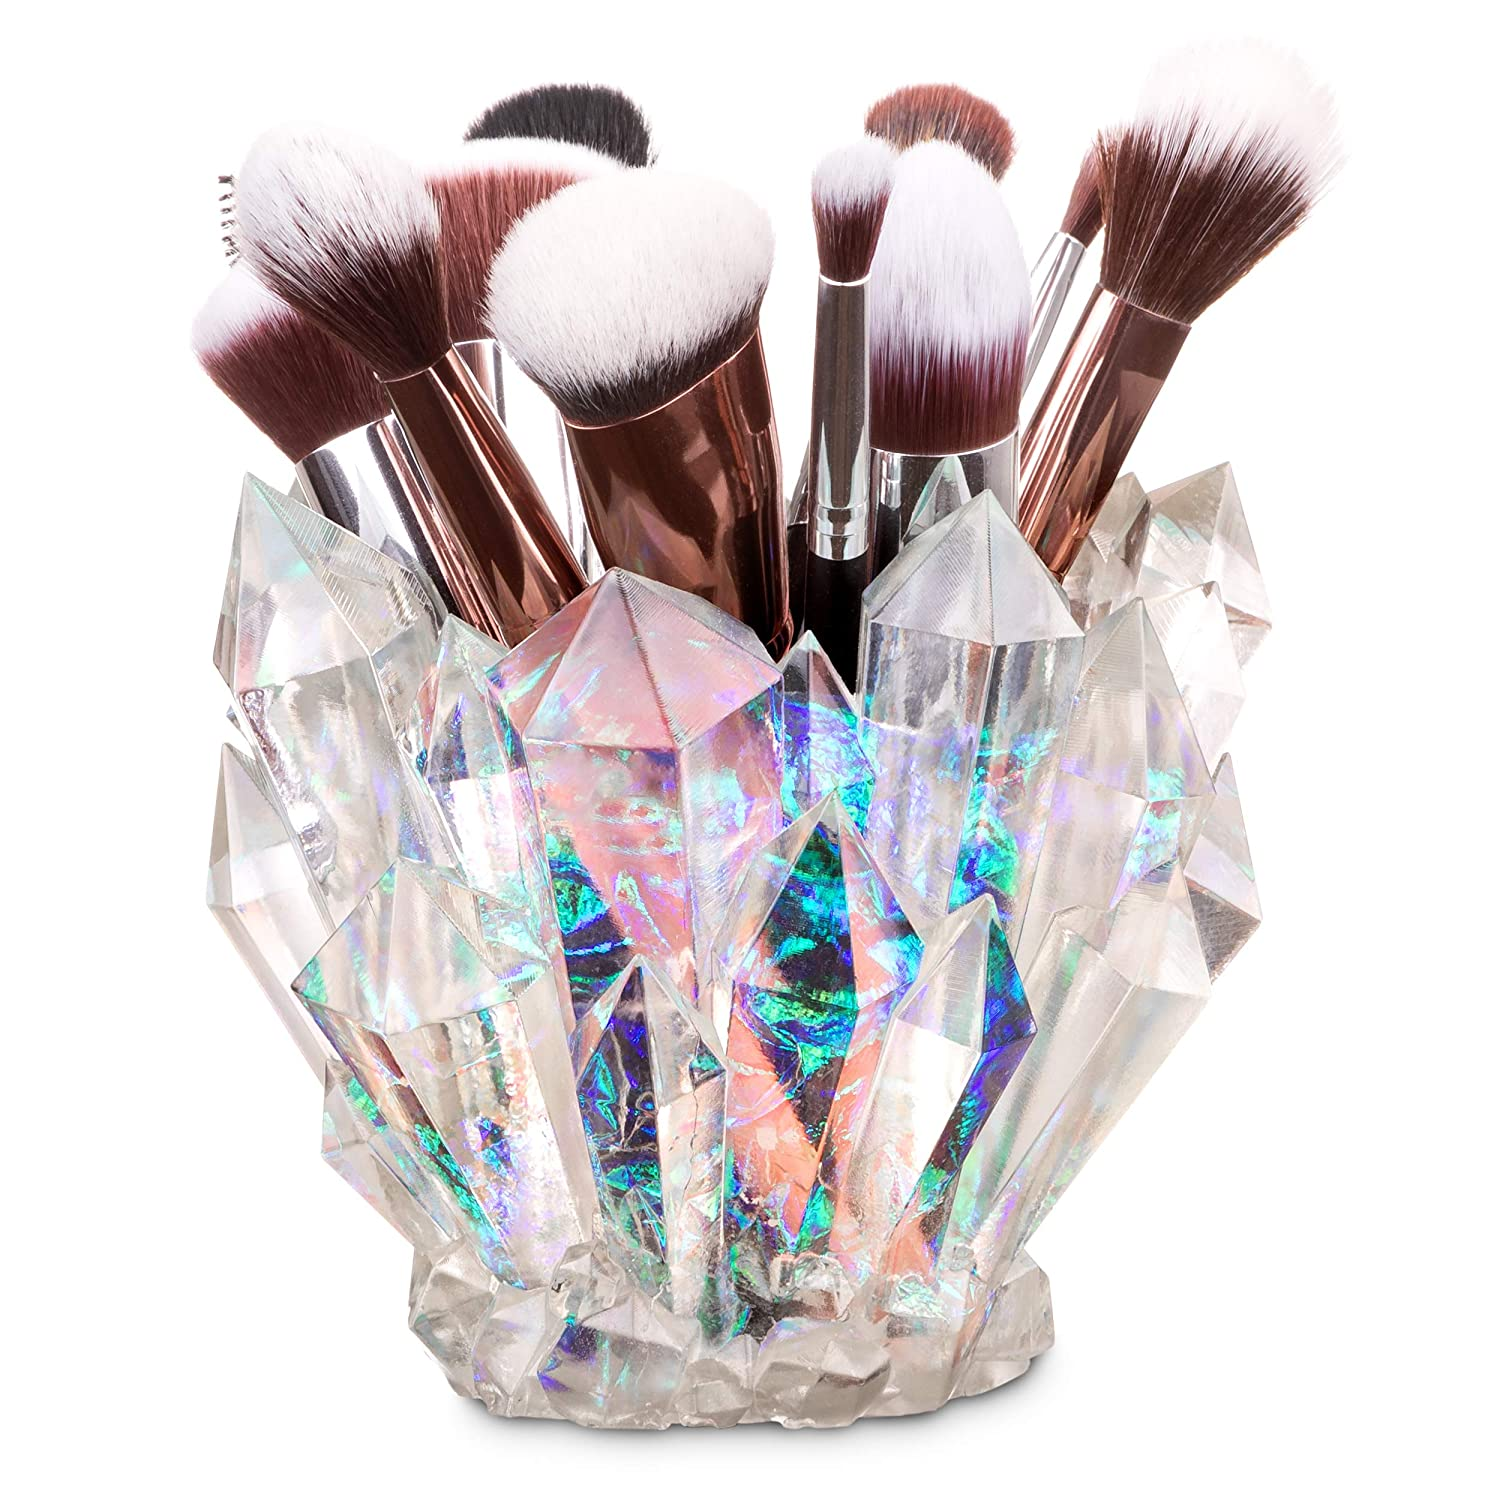 Wicked Vanity Beauty Crystal Makeup Brush Holder Pen Holder Vanity Desk Office Organizer Stationary Decor Planter